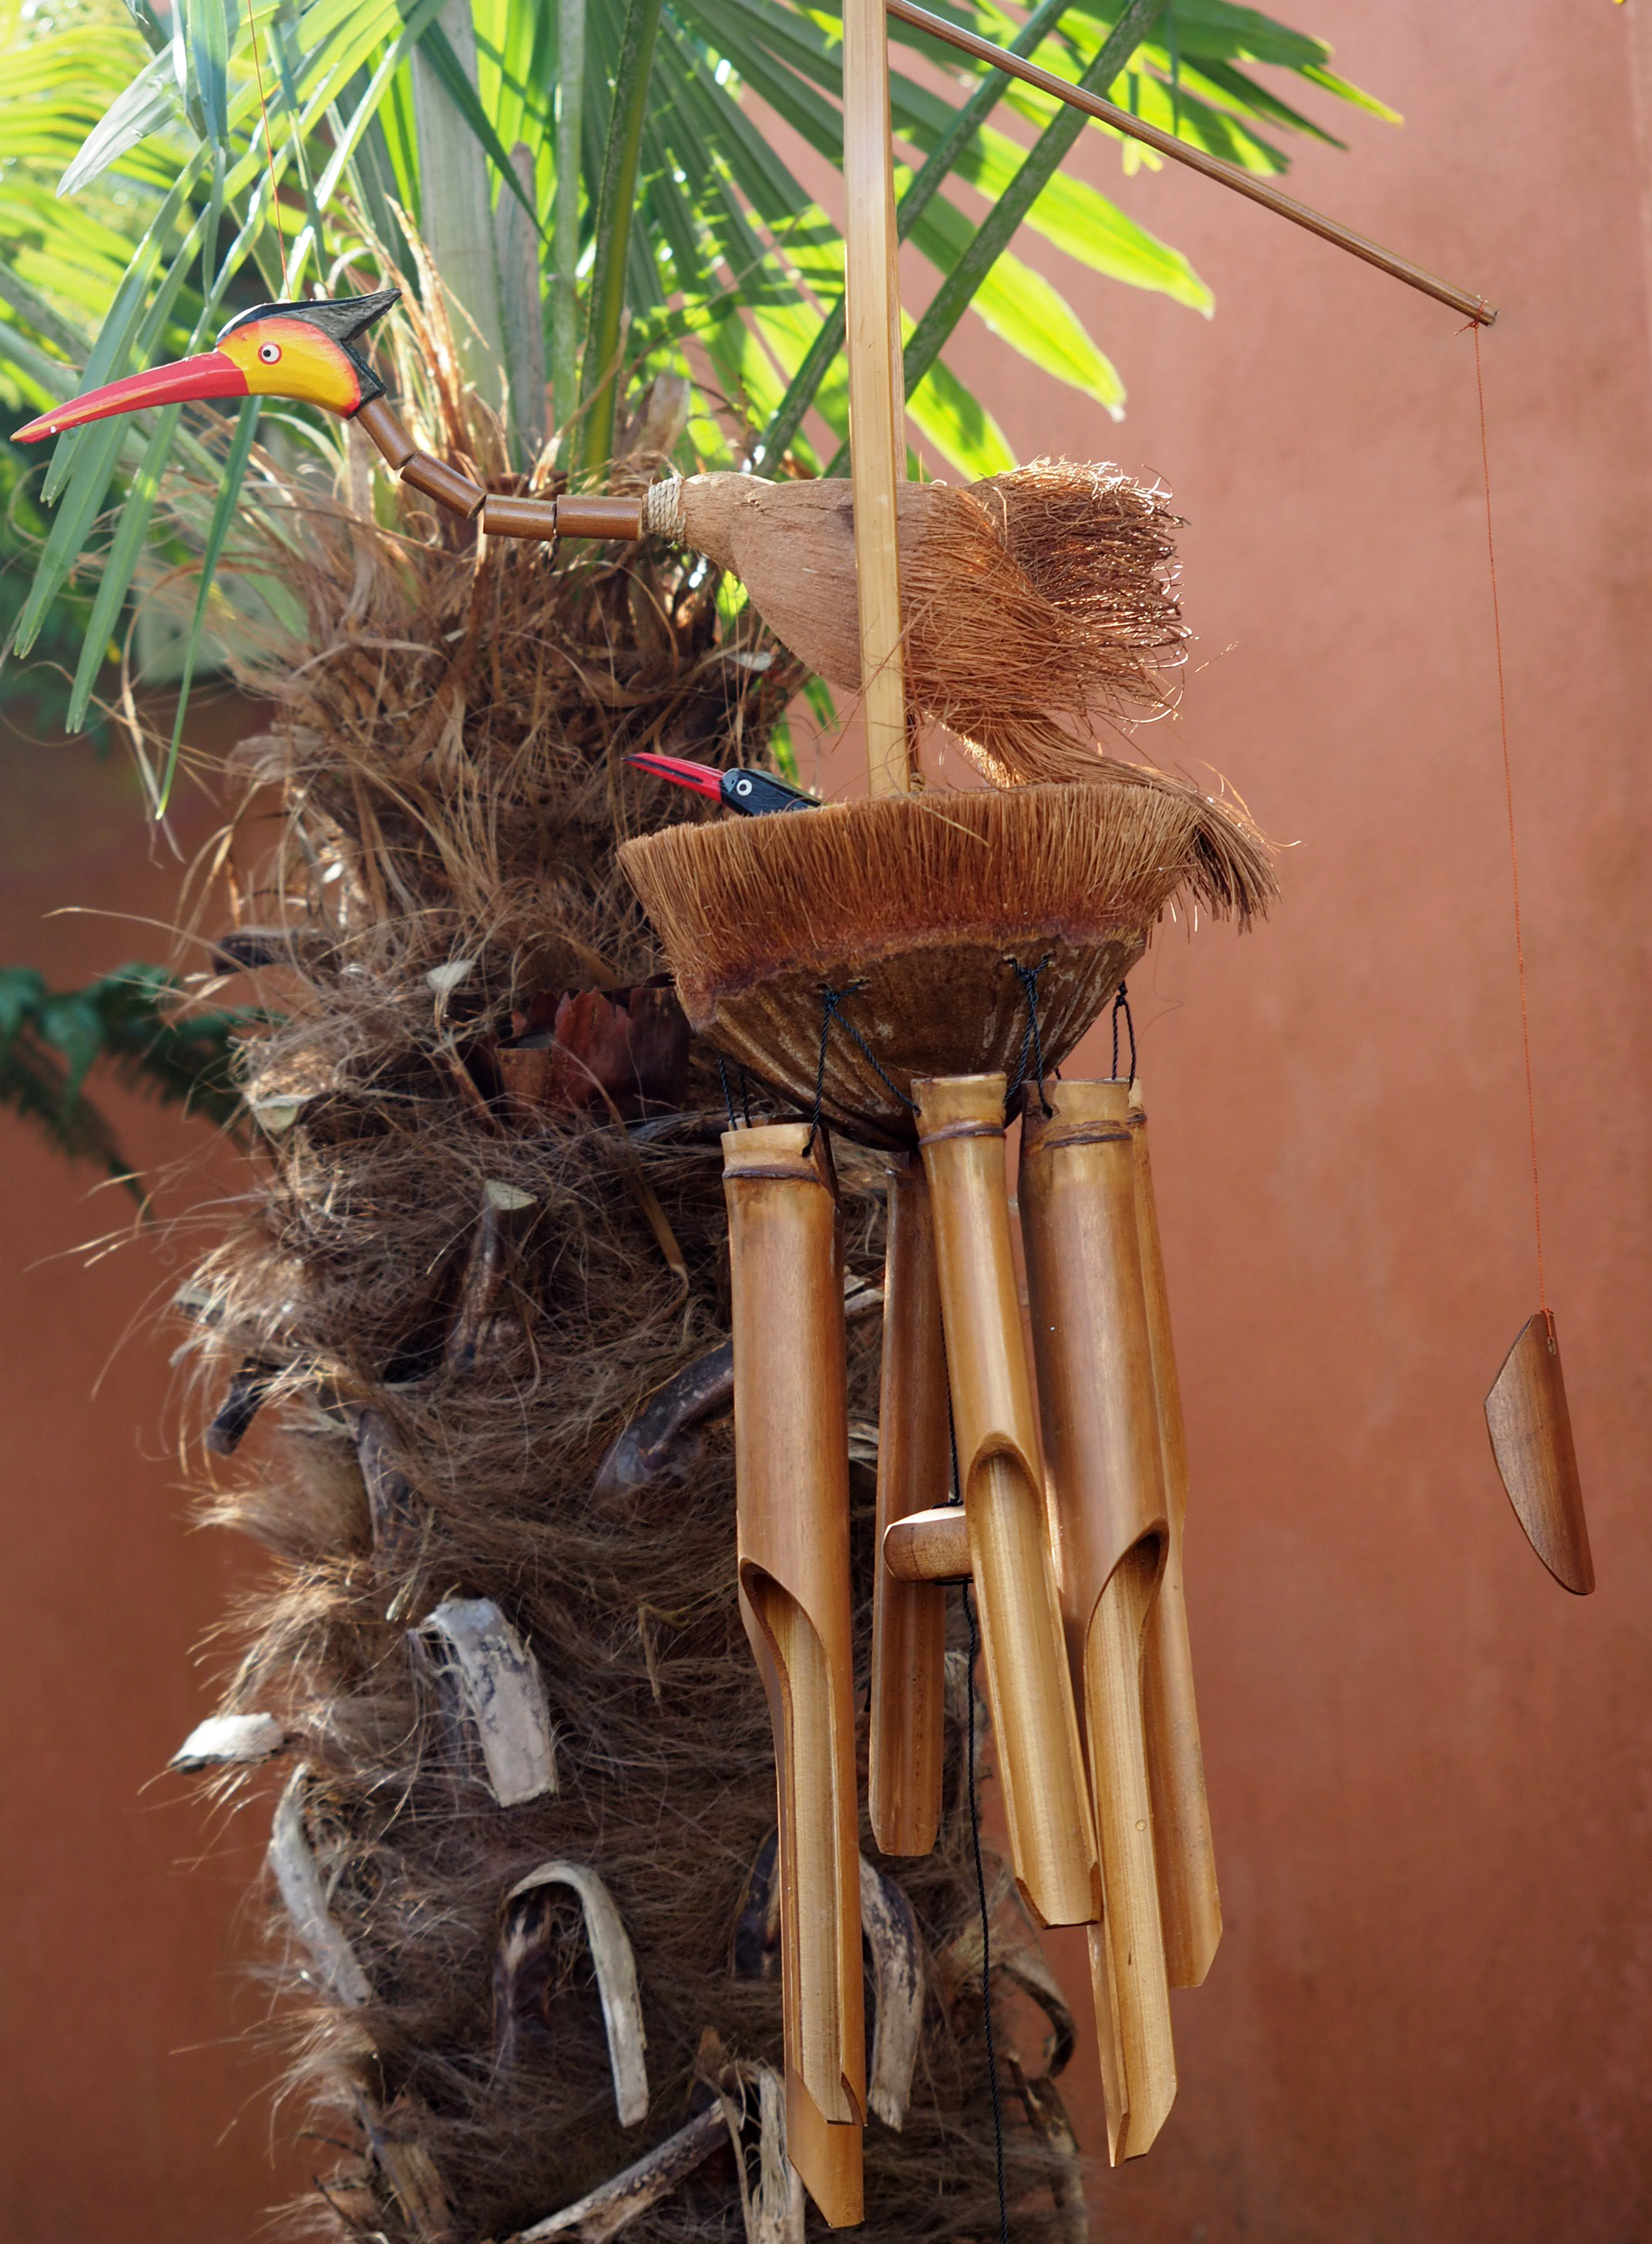 Large-Handmade-Fair-Trade-Coconut-And-Bamboo-Wind-Chime-Mobiles-6-Designs miniatuur 5